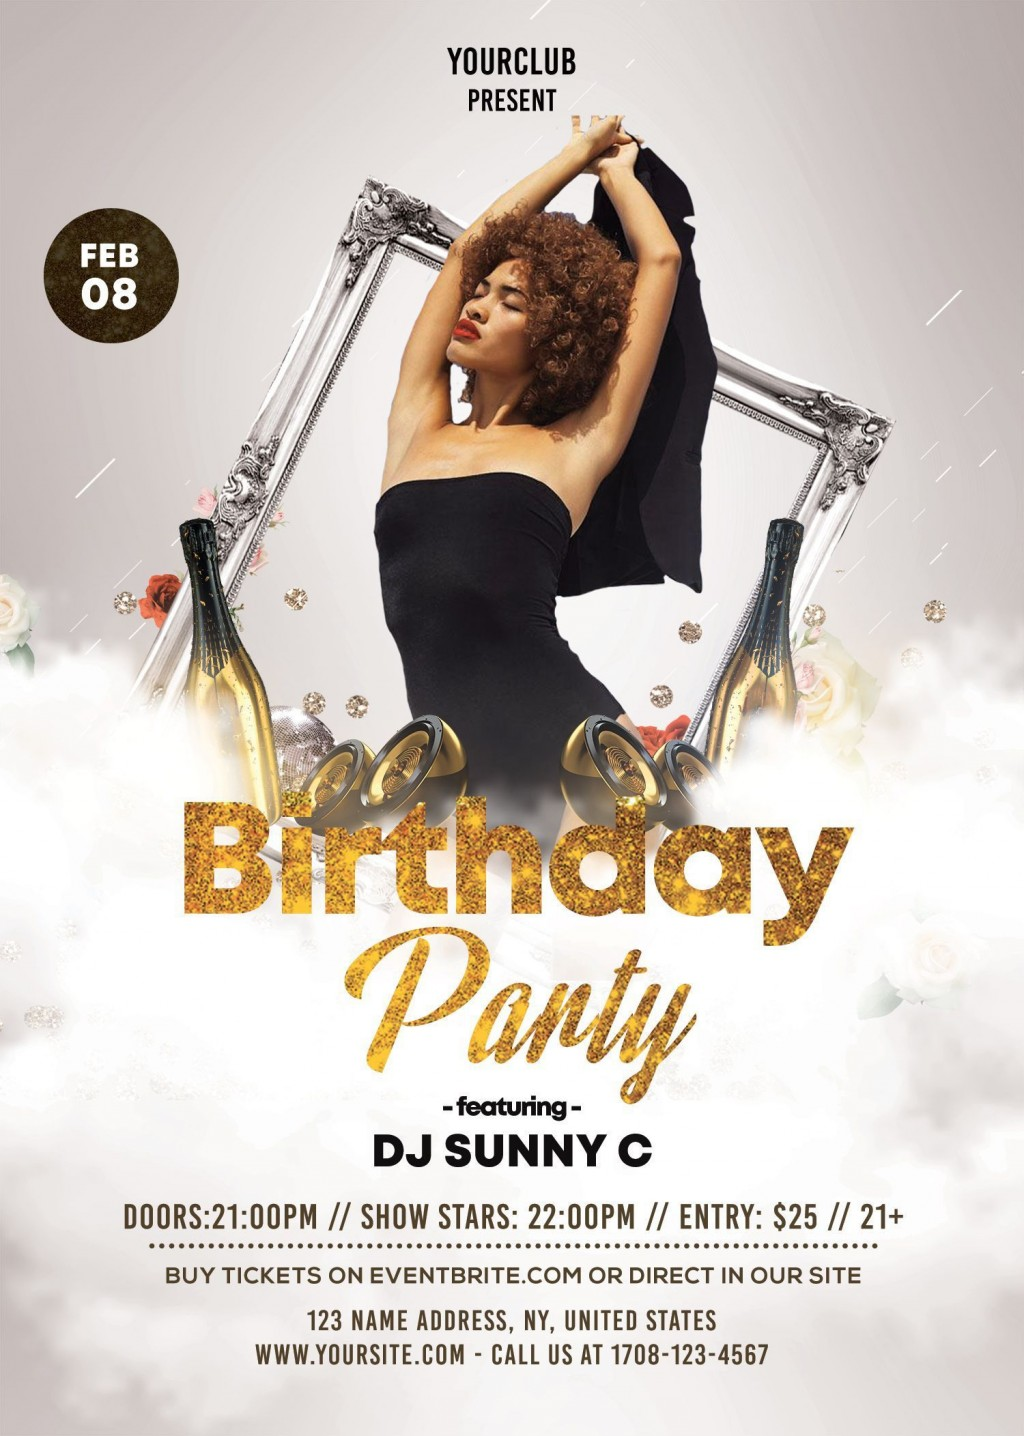 004 Unusual Party Flyer Psd Template Free Download Photo  RaveLarge